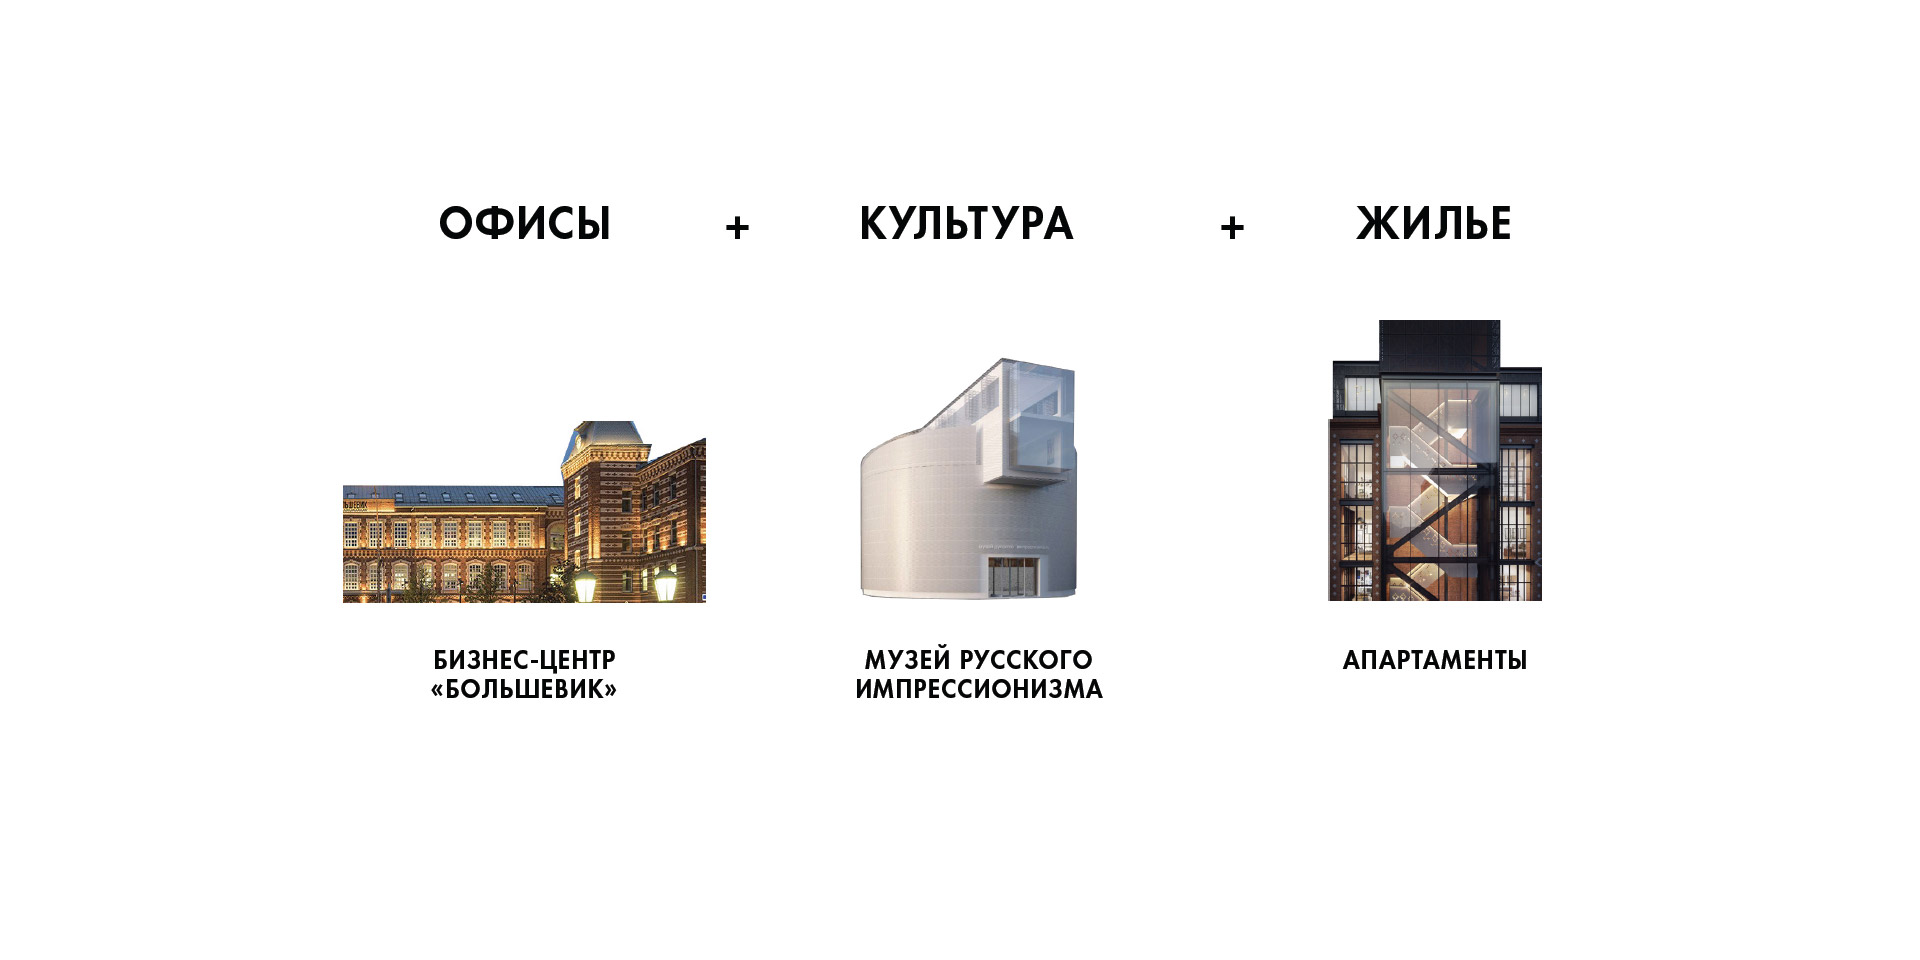 Apartments at the Bolshevik Factory